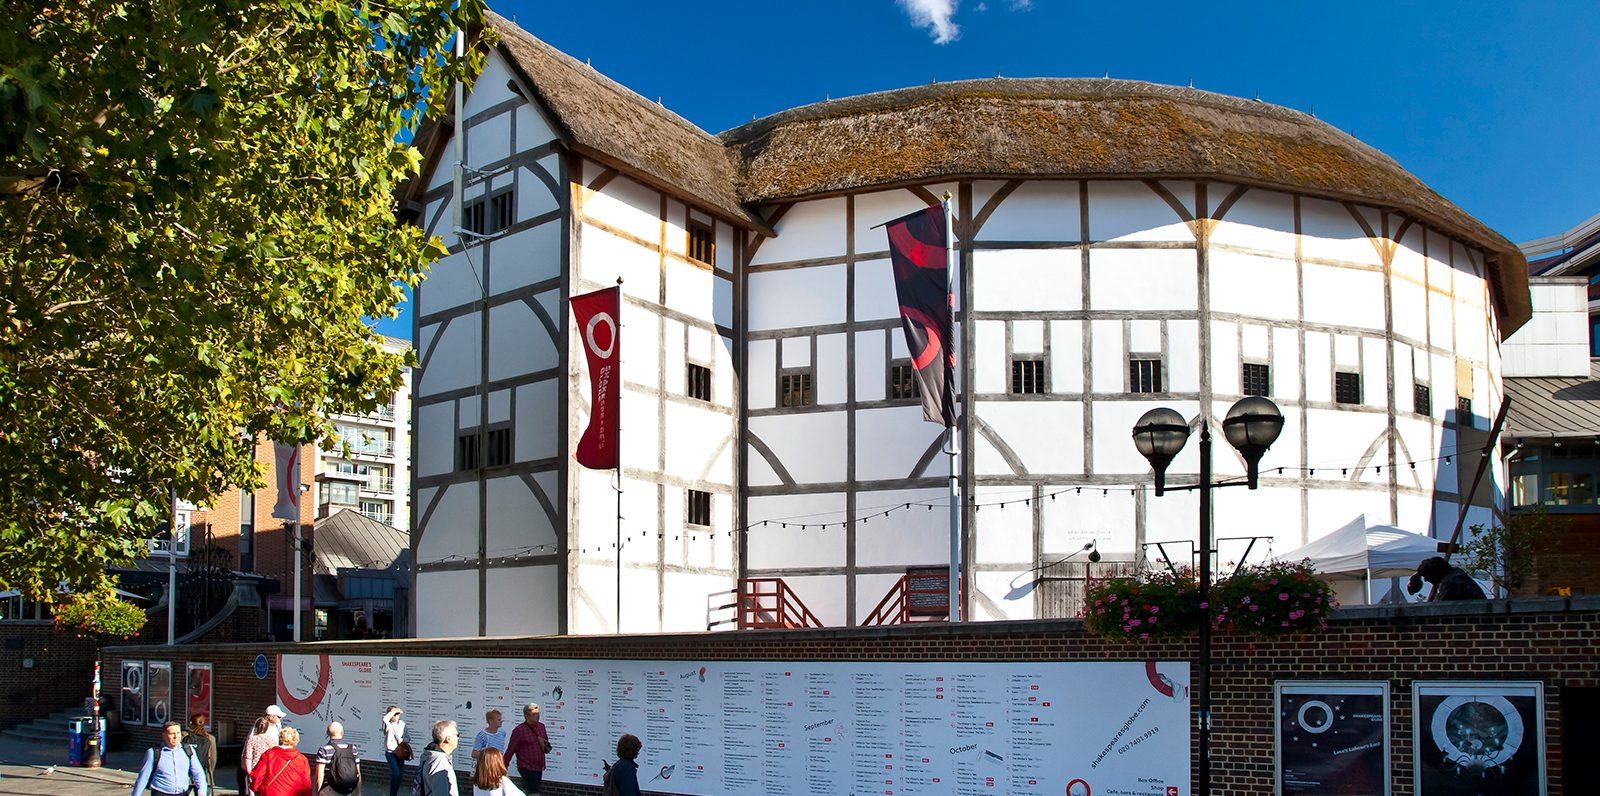 Exterior photograph of the Globe Theatre